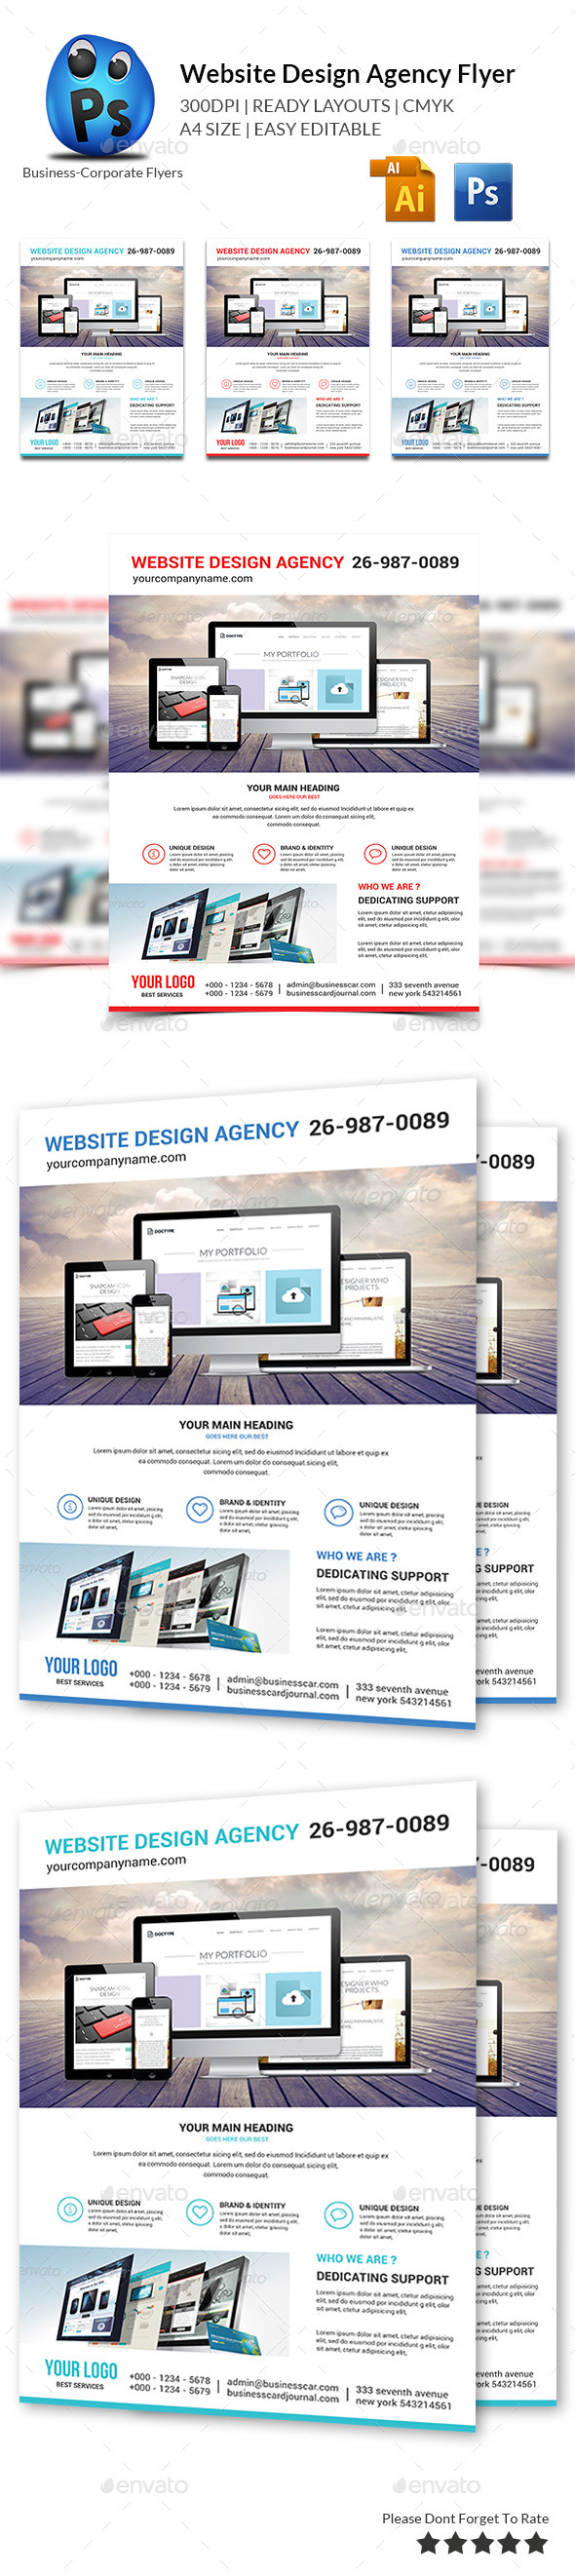 GraphicRiver Website Design Agency Flyer 10597297